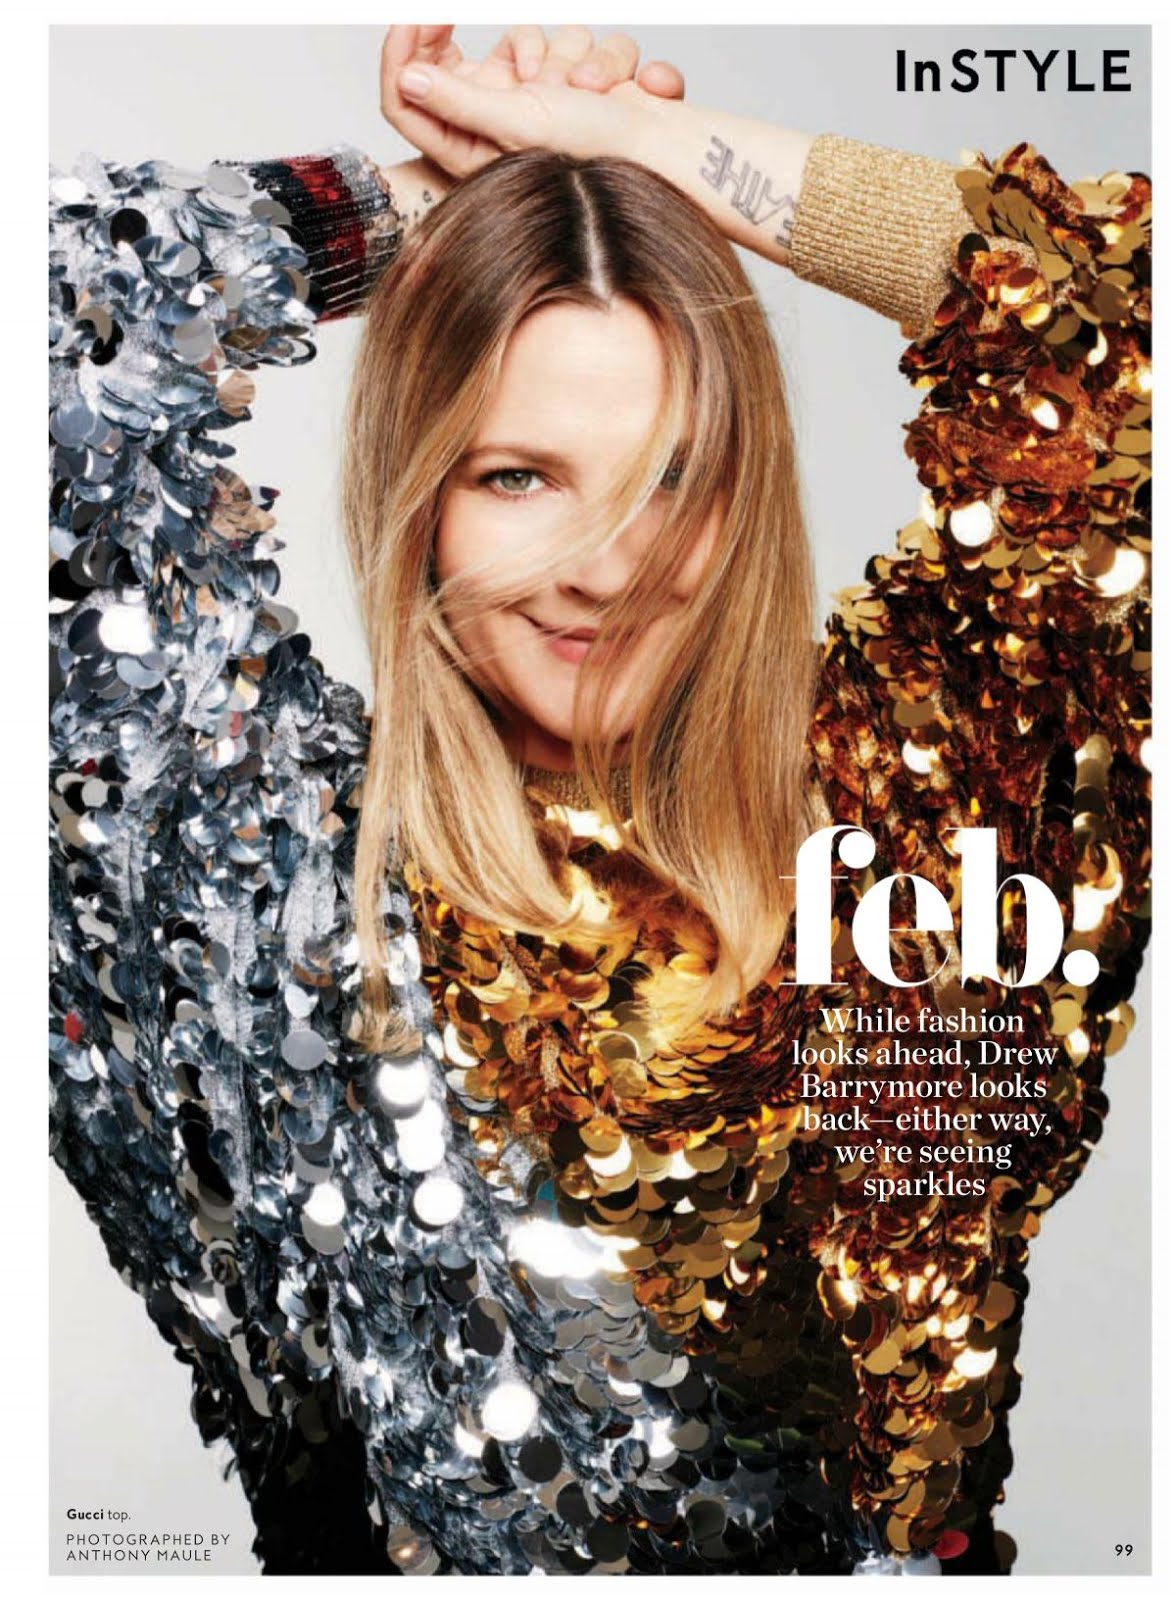 HQ Photo Shoot of Drew Barrymore for Instyle Magazine February 2018 Issue